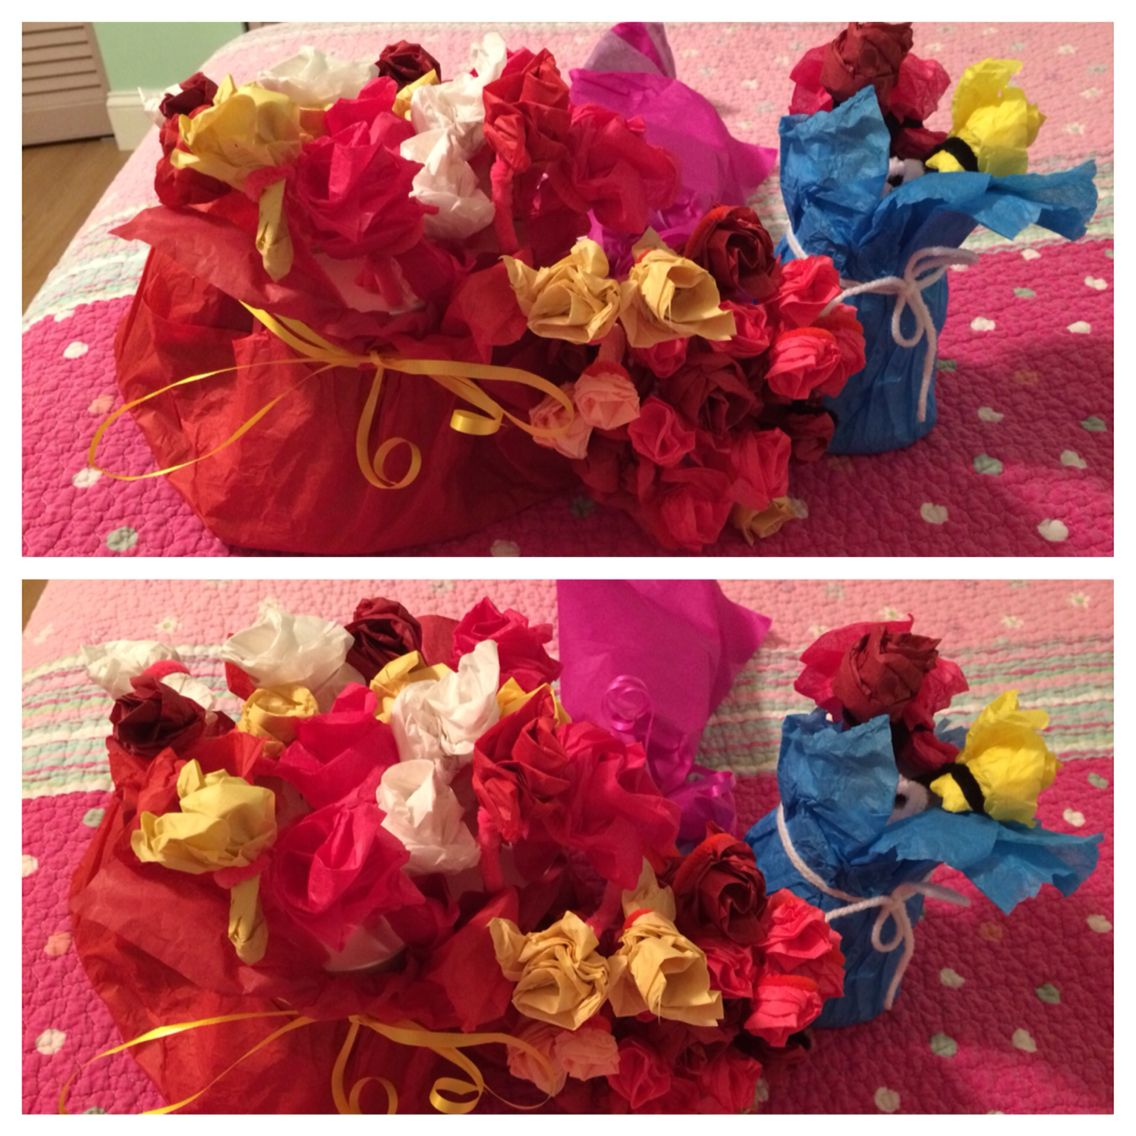 Bouquet of roses.  http://m.wikihow.com/Make-Tissue-Paper-Roses